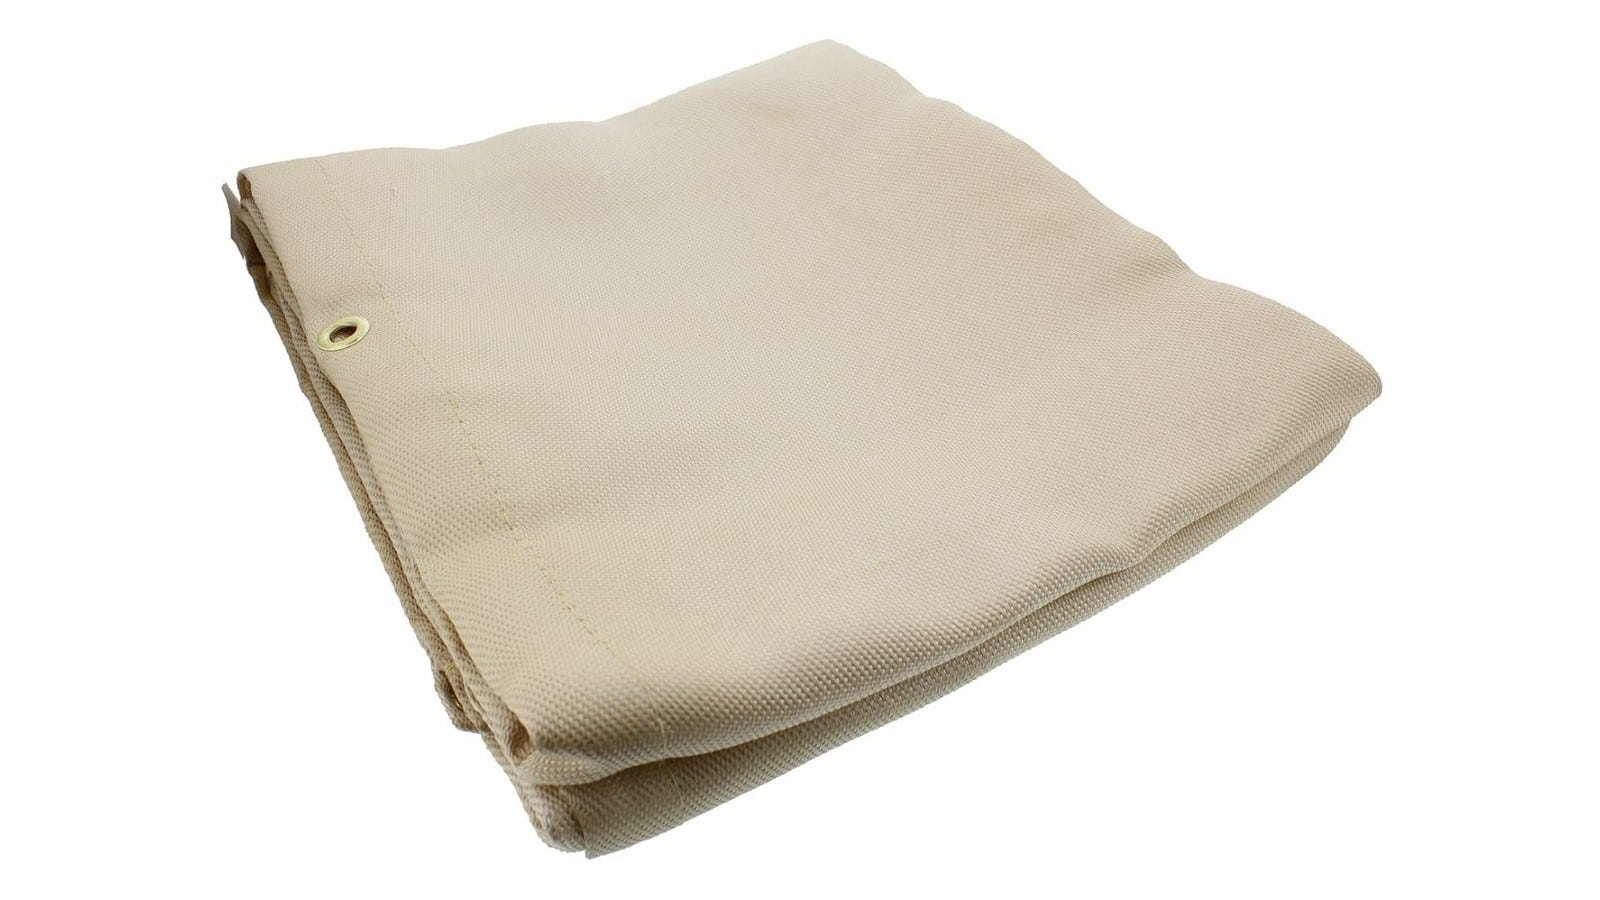 a folded tan-colored heavy blanket